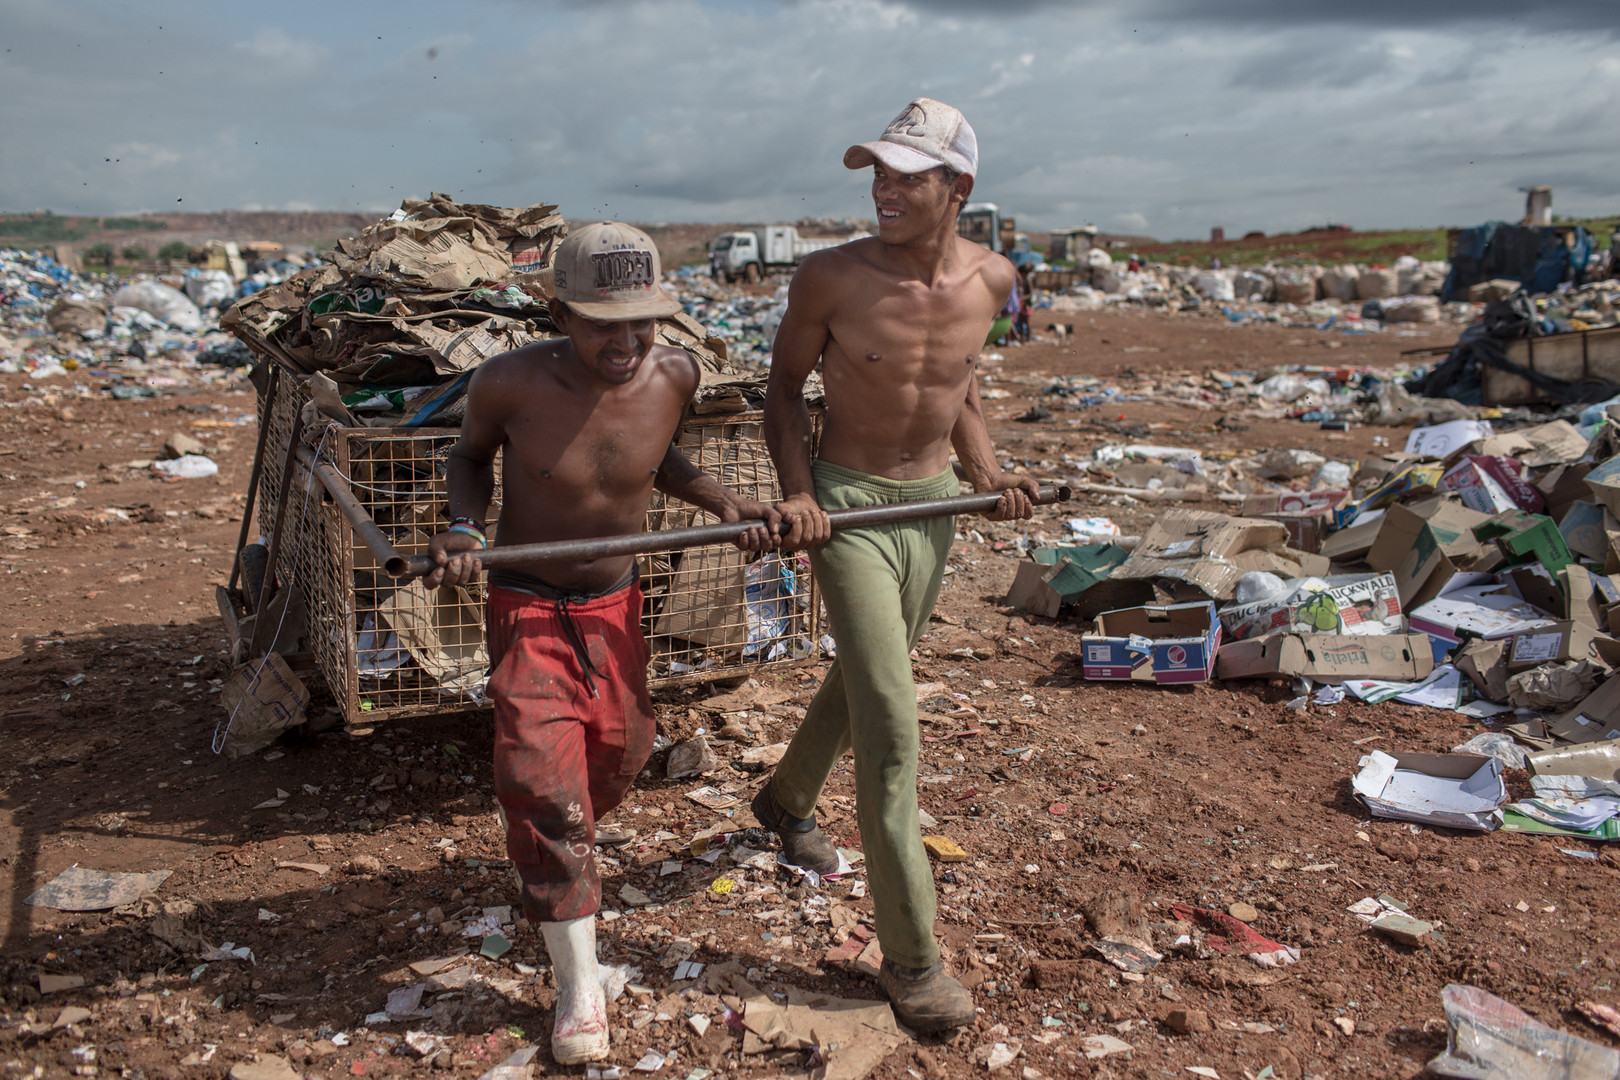 José Hilton dos Santos Souza, 20, right, and his friend, Cleiton de Jesus, 29, left, carrying cardboards at the Estrutural dump in Brasilia, on Monday, Jan. 15, 2018. They know each other since they began working at the dump when they were kids.